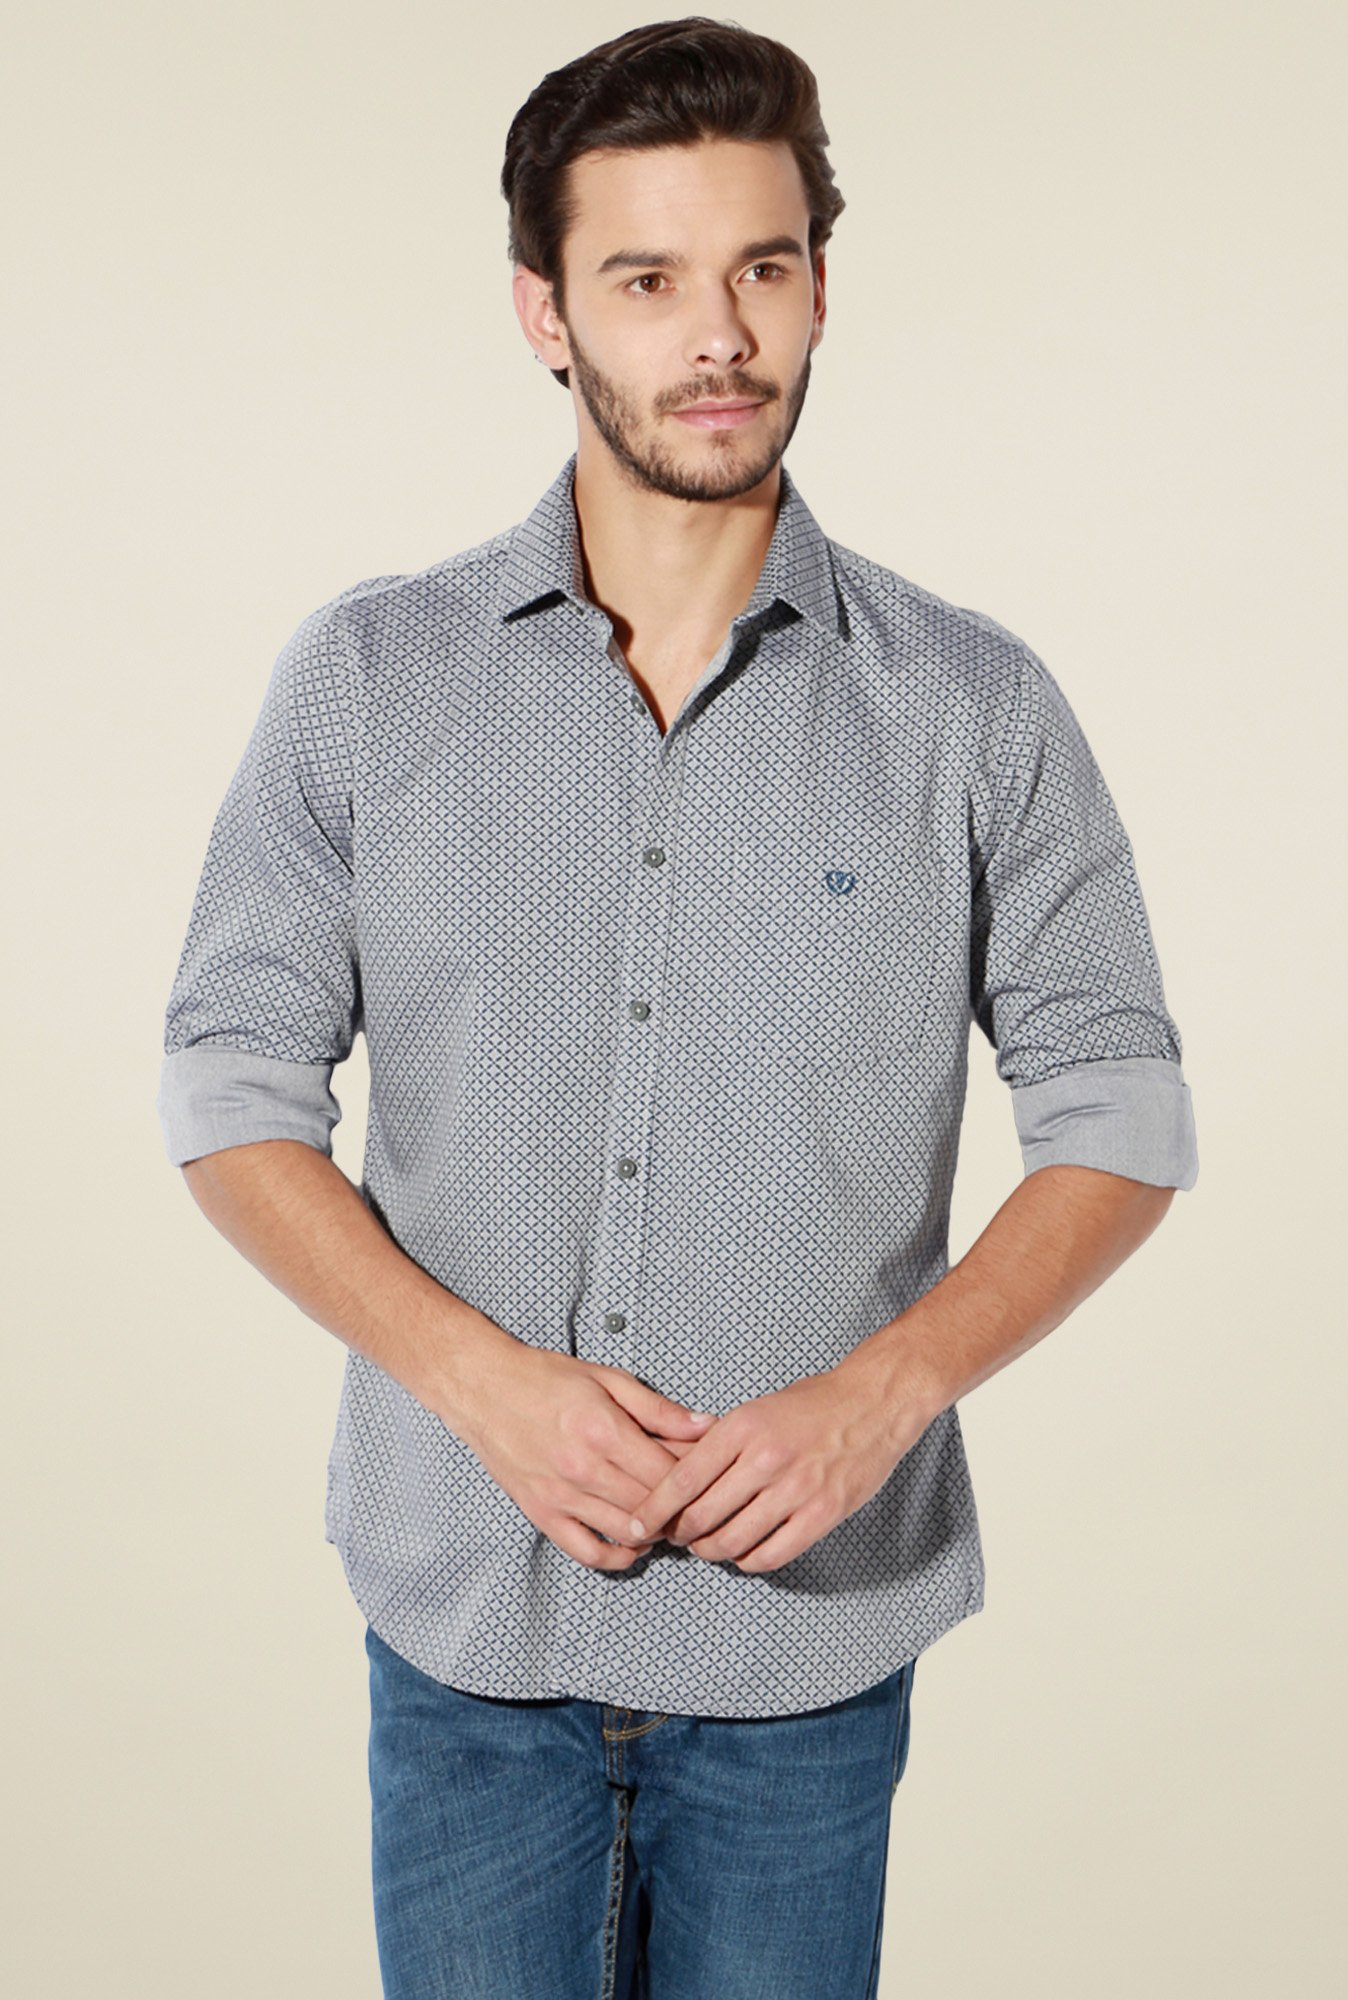 Van Heusen Grey Full Sleeves Printed Cotton Shirt